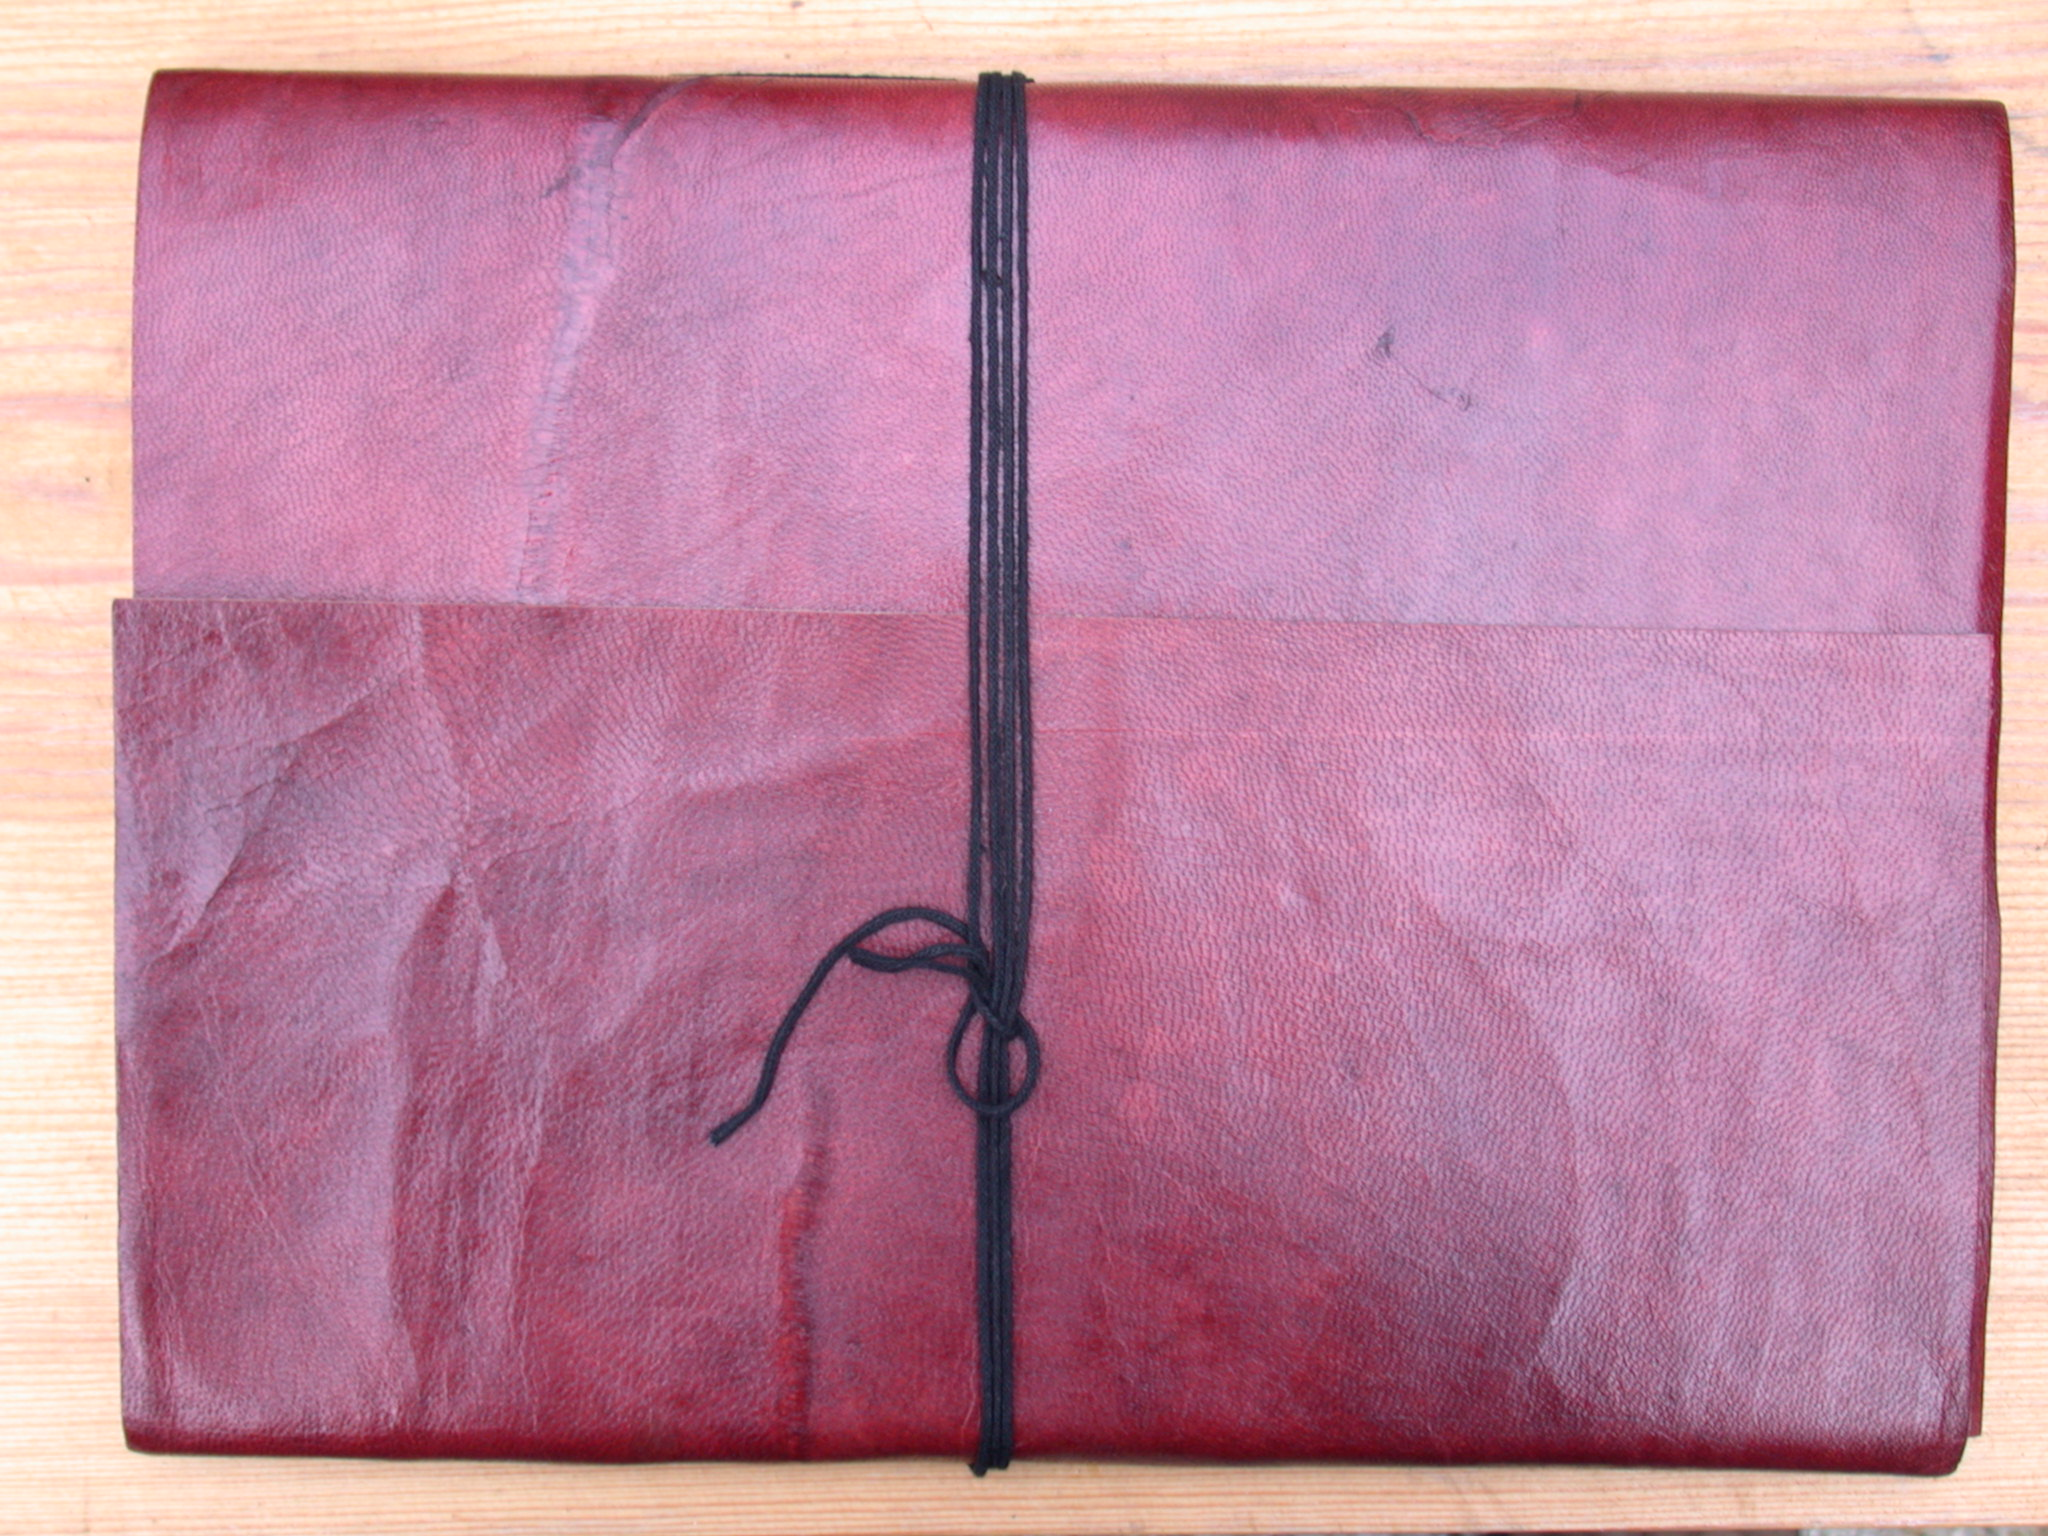 book wrapped wrapping pink purple leather leathery bound with string